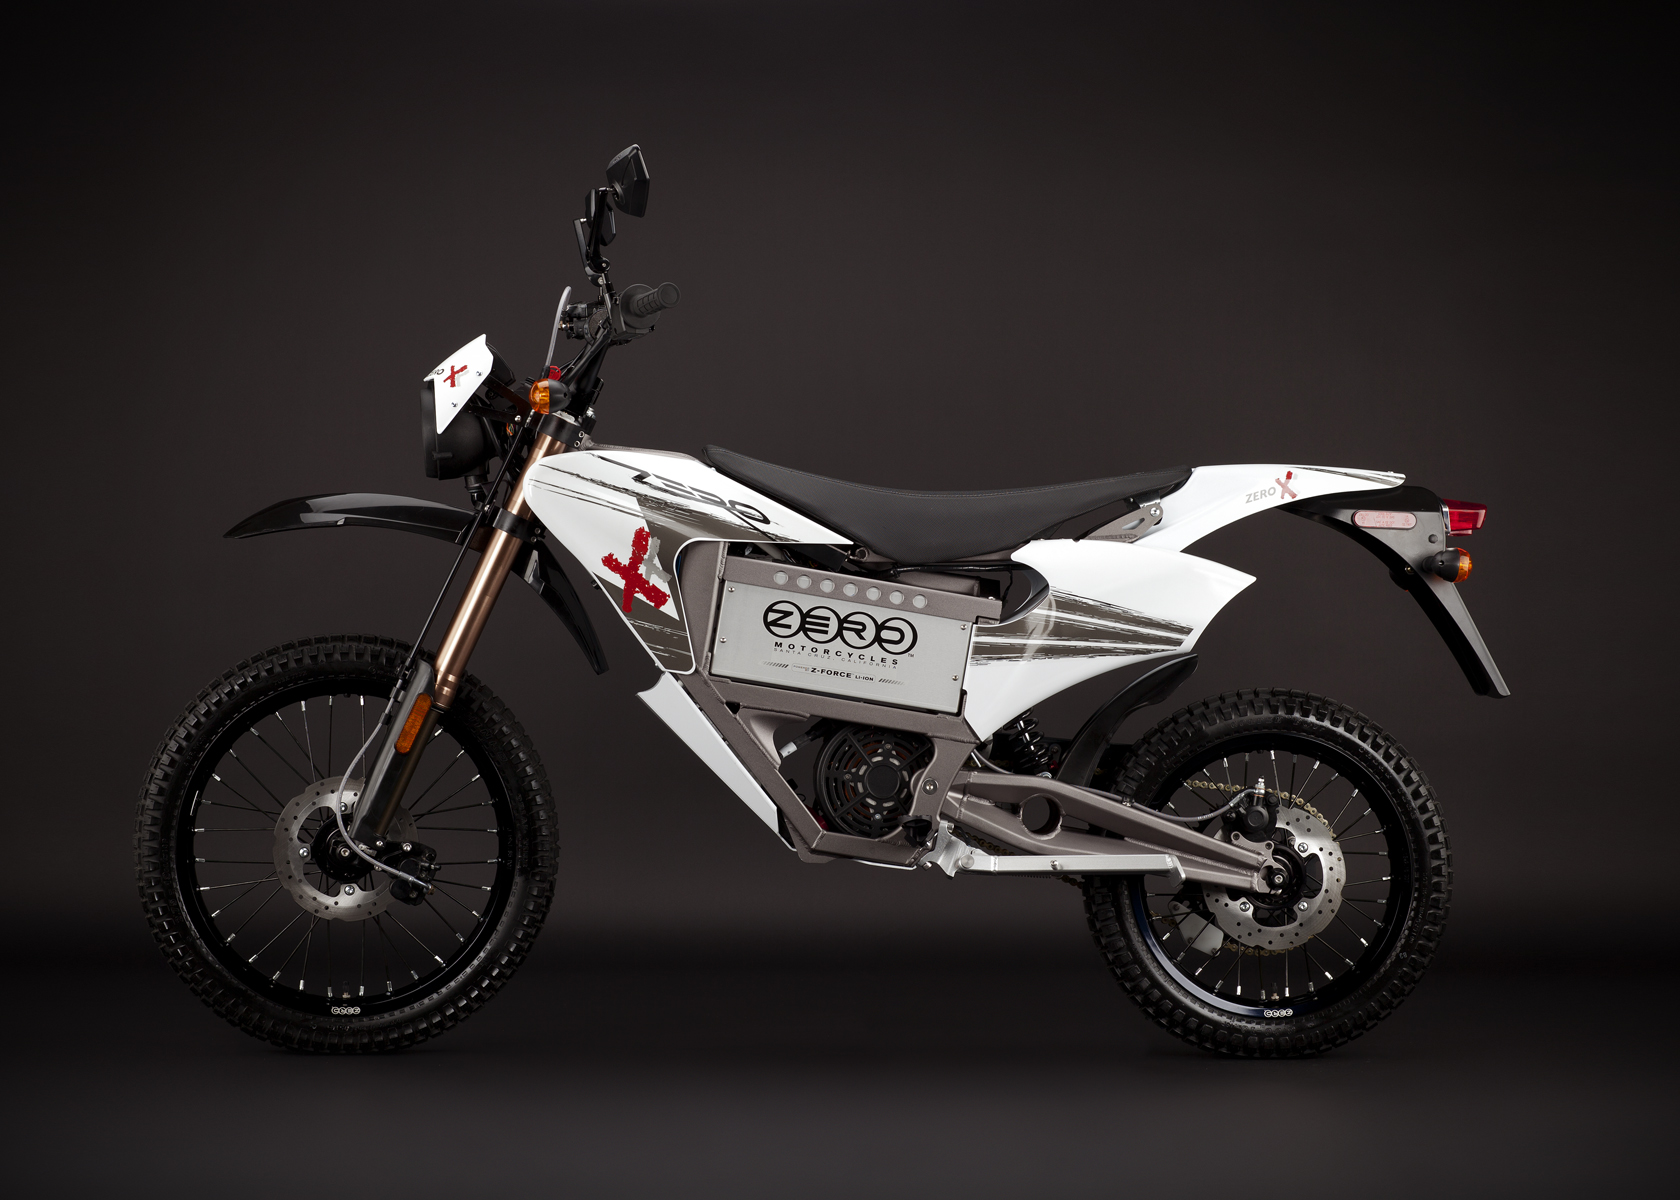 '.2011 Zero X Electric Motorcycle: Profile Left, Street Legal Model.'